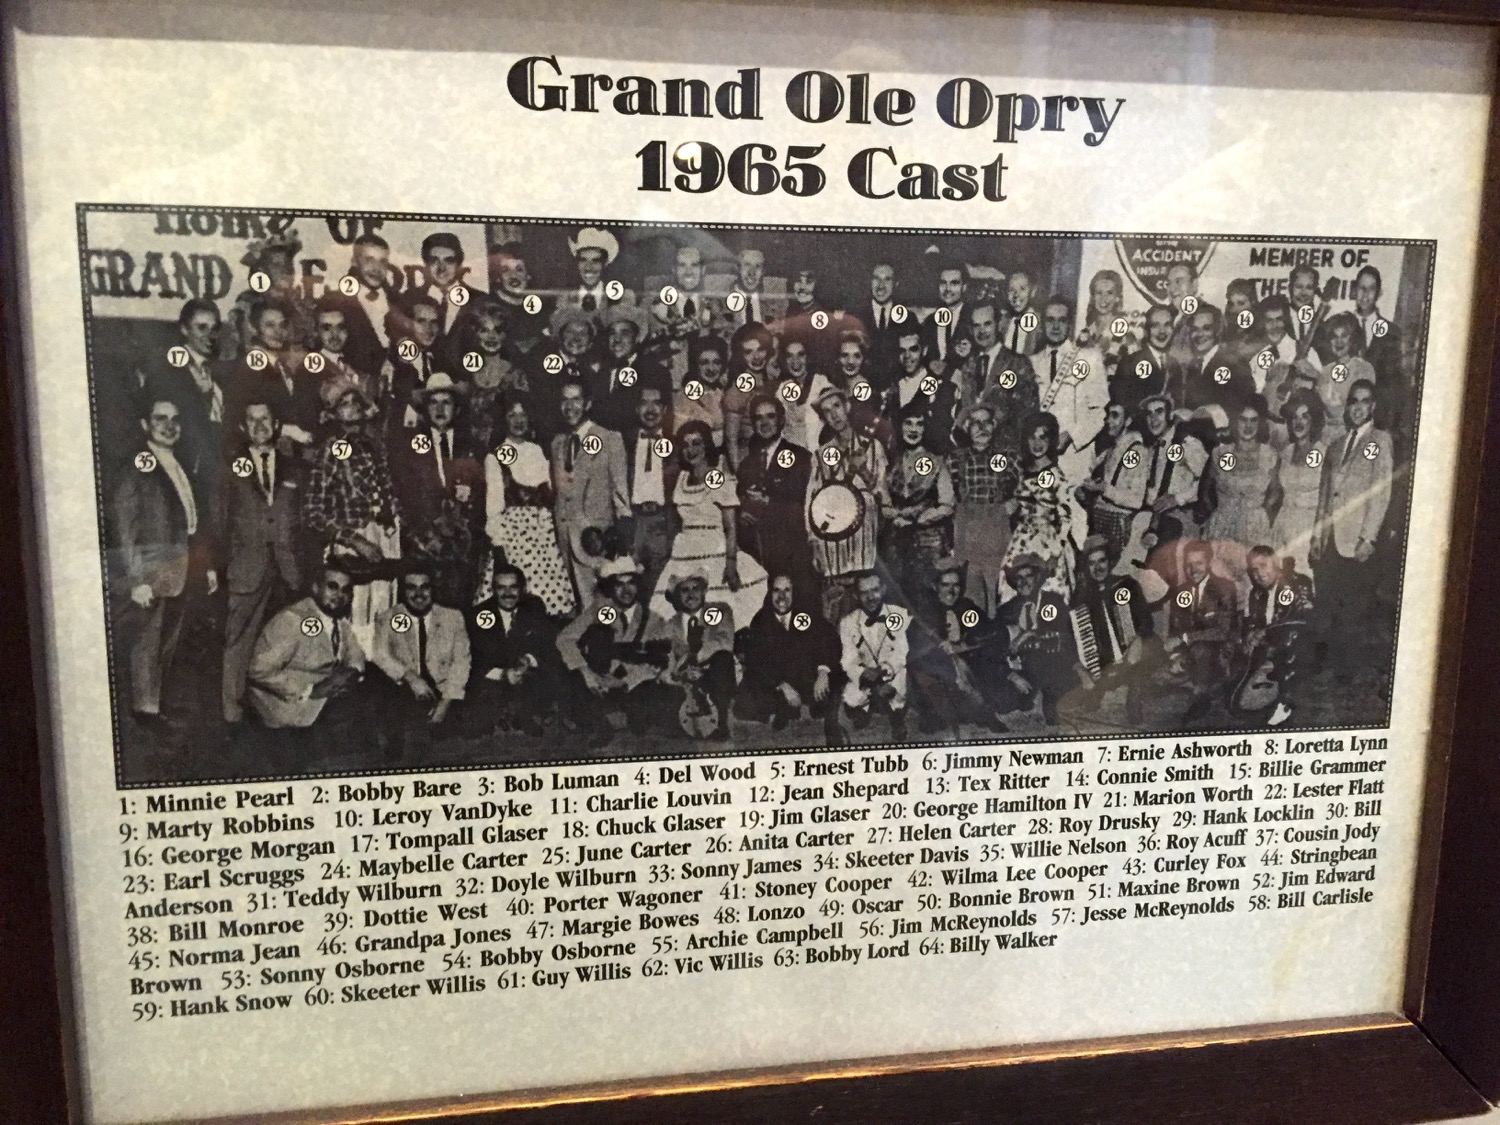 This photo hangs in the lobby. They had a stacked cast in 1965.